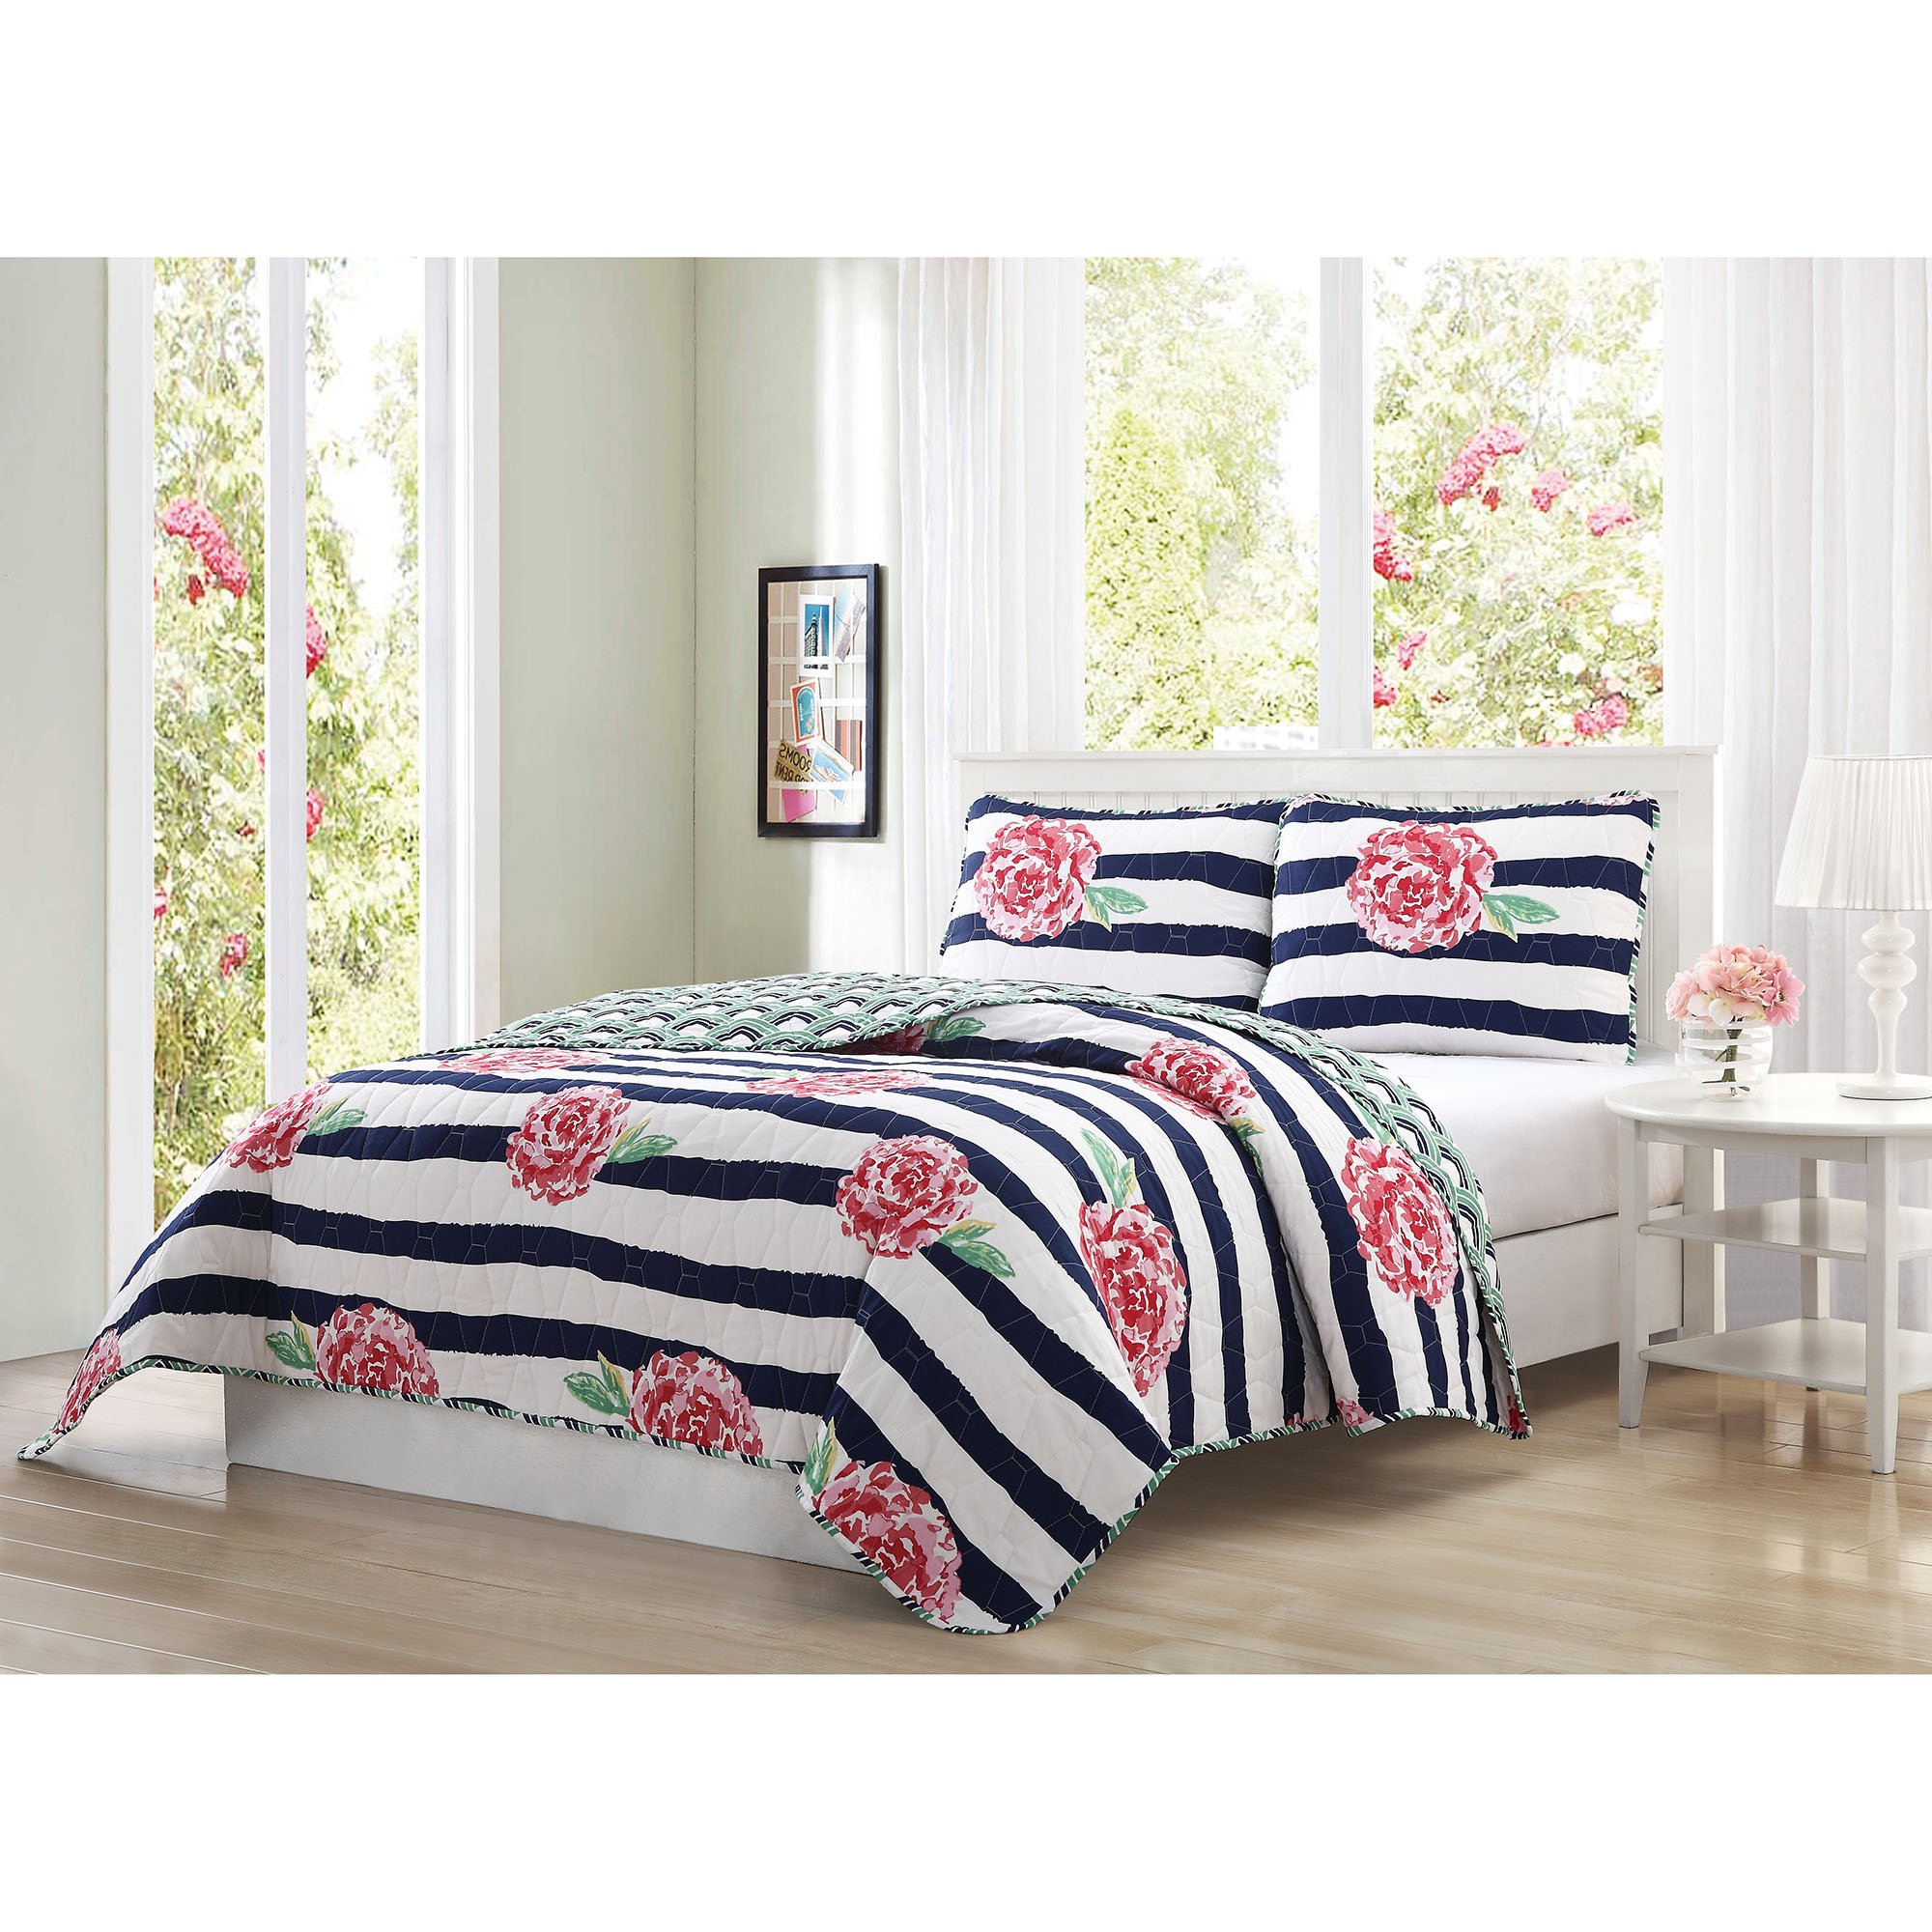 Quaint Home Marielle Reversible 3-Piece Quilt Set